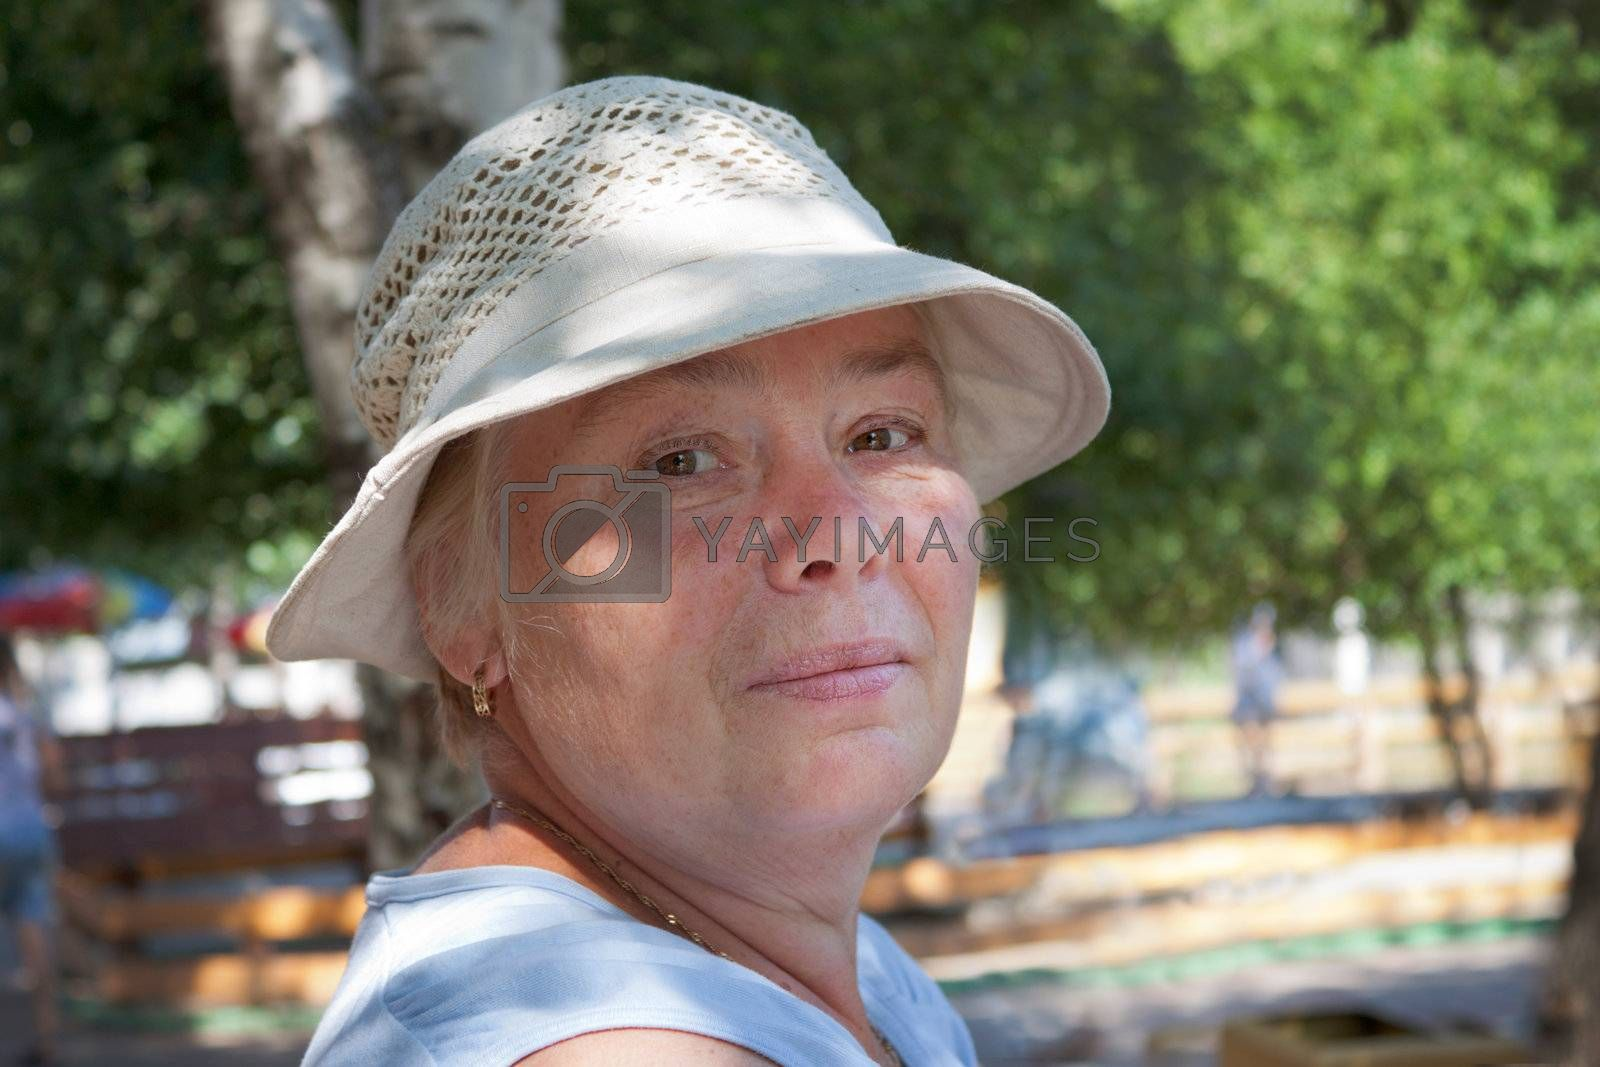 The pensioner at leisure in a summer park